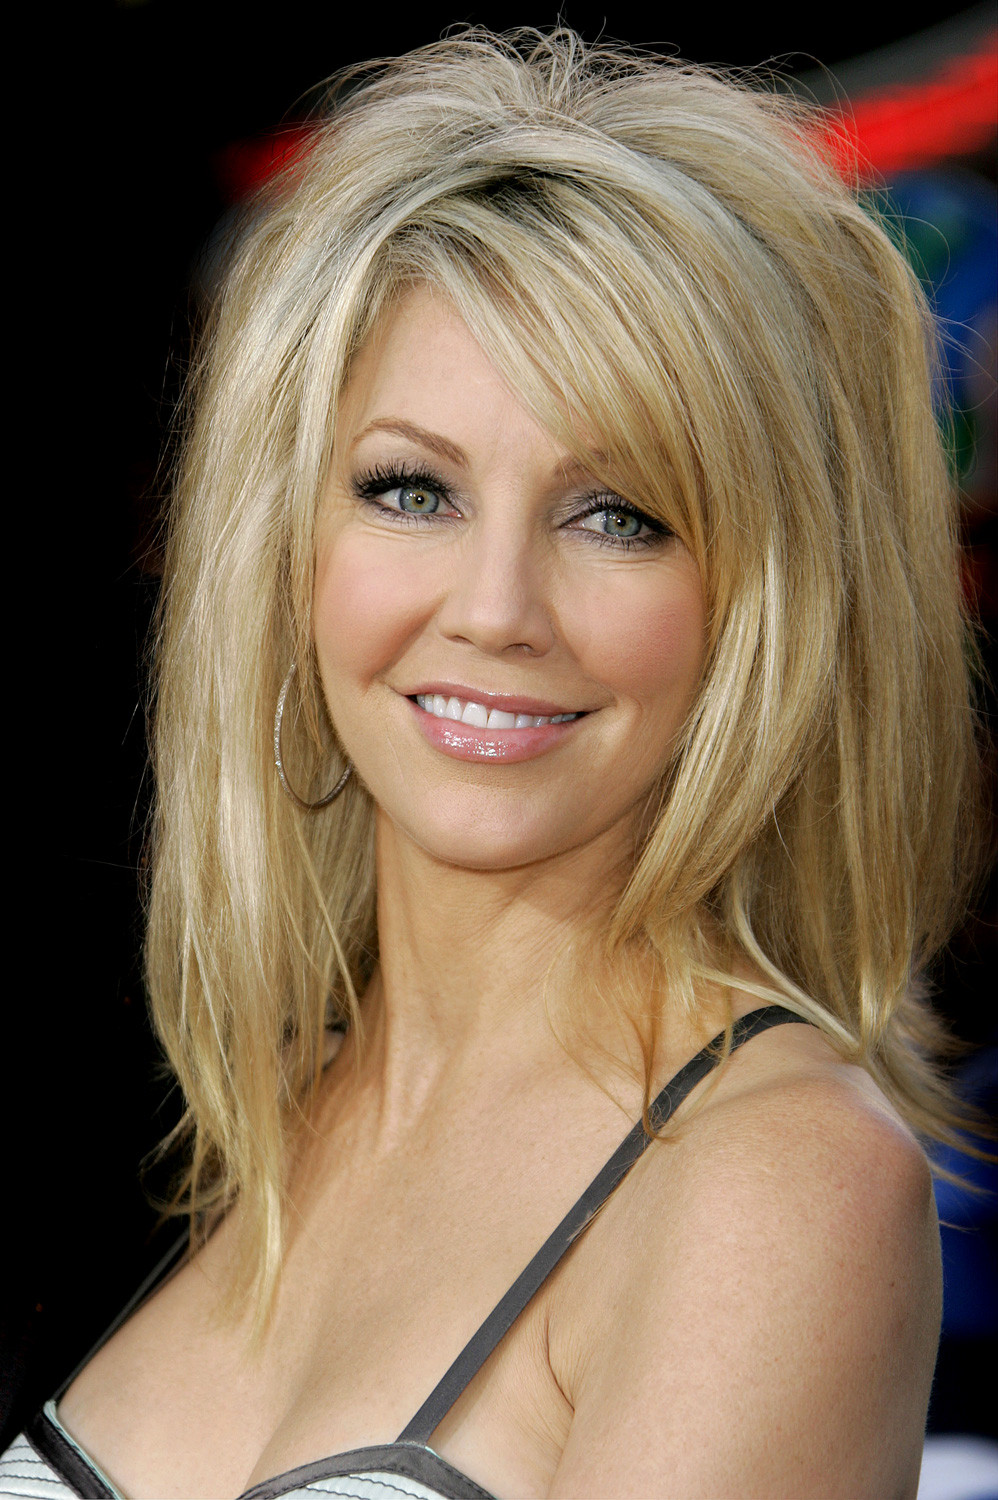 heather locklear 2017heather locklear 2016, heather locklear instagram, heather locklear 2017, heather locklear 80s, heather locklear melrose place, heather locklear height, heather locklear dynasty, heather locklear hairstyles, heather locklear 2000, heather locklear scary movie, heather locklear gallery, heather locklear wiki, heather locklear wallpaper, heather locklear and richie sambora, heather locklear wikipedia, heather locklear leather, heather locklear loreal, heather locklear sammy jo